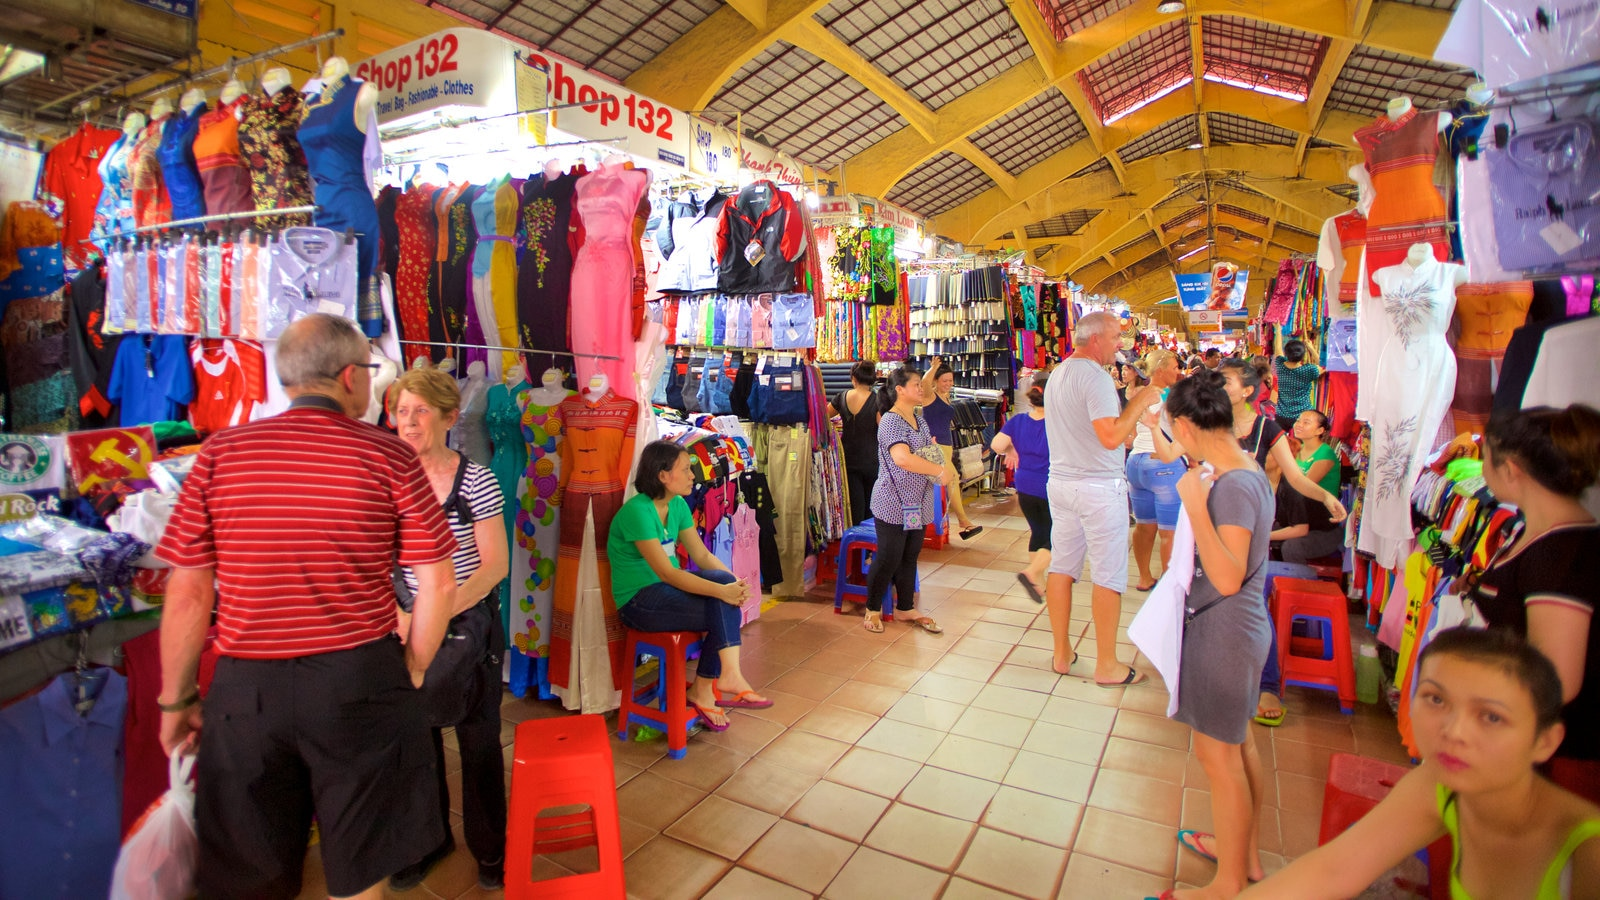 Ben Thanh Market showing shopping, interior views and markets